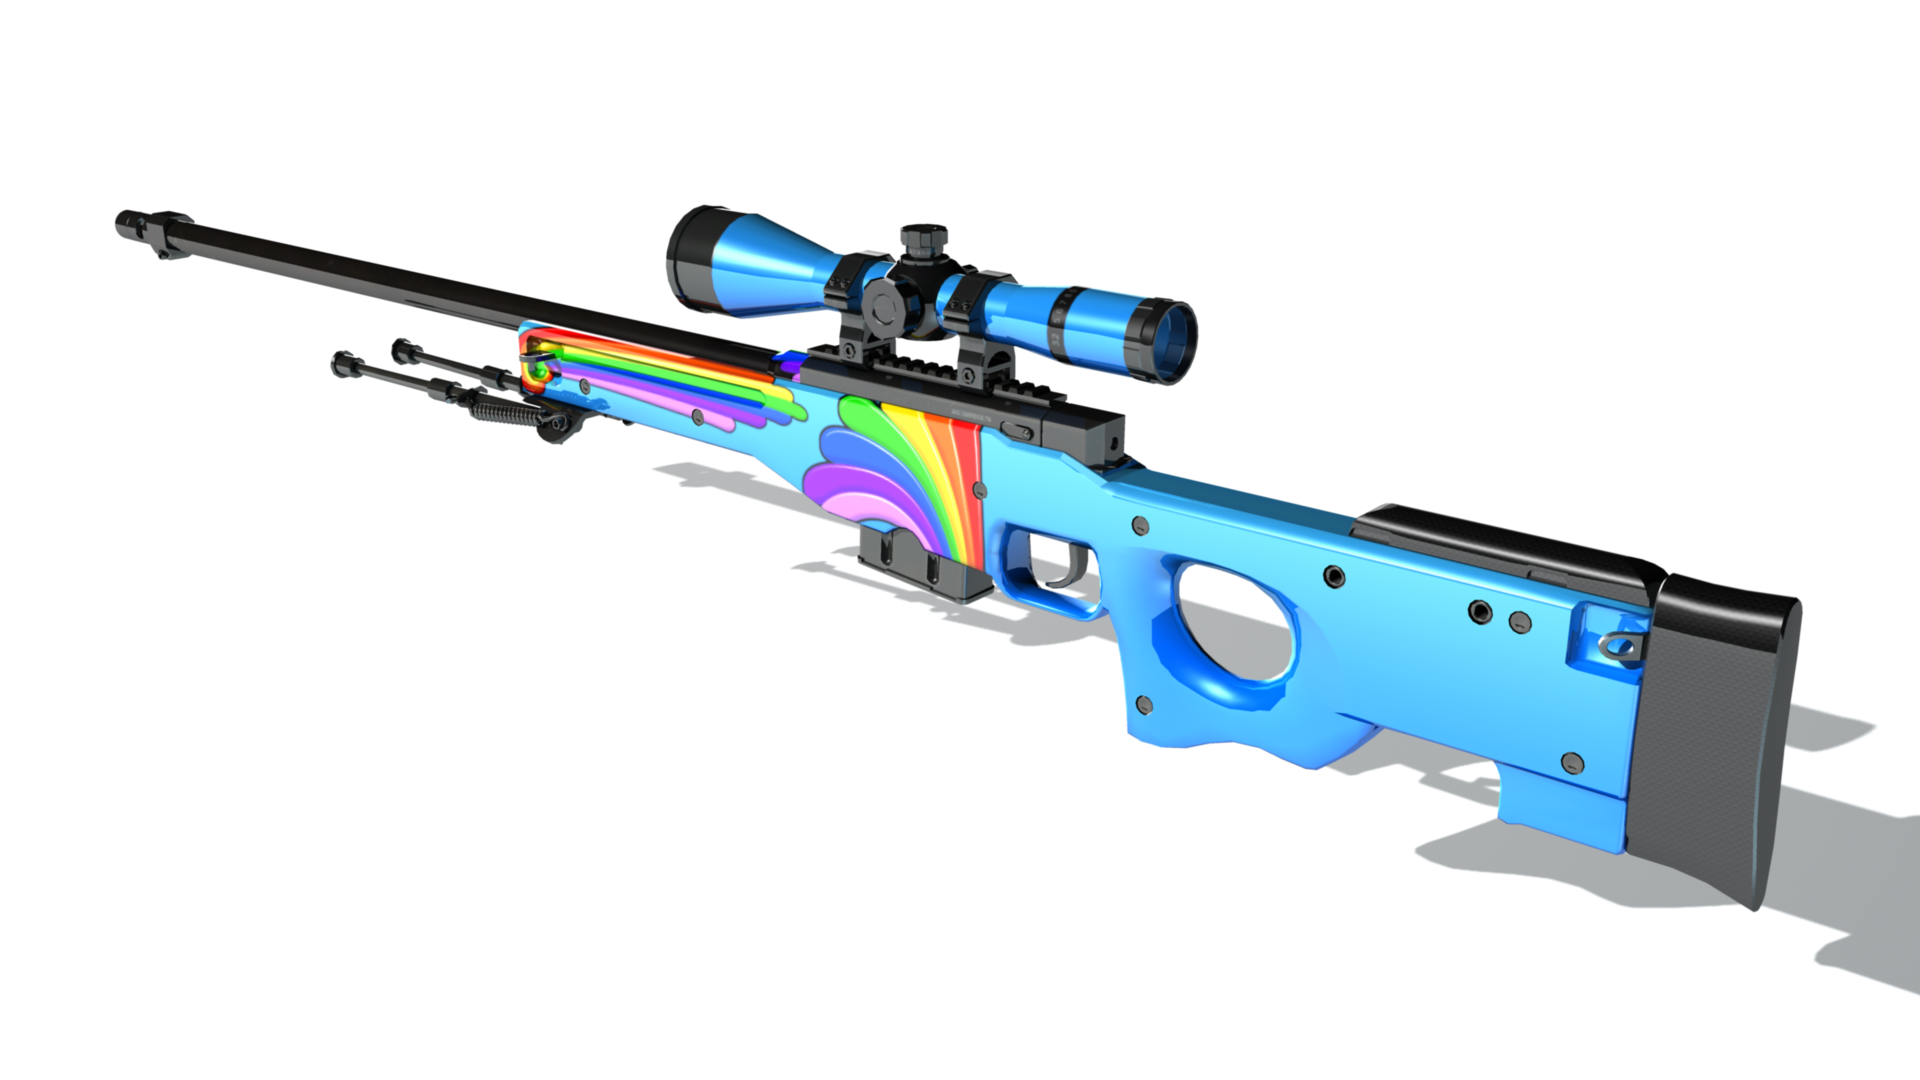 cs go awp burst weapon skin preview by gizmoguy99 on deviantart